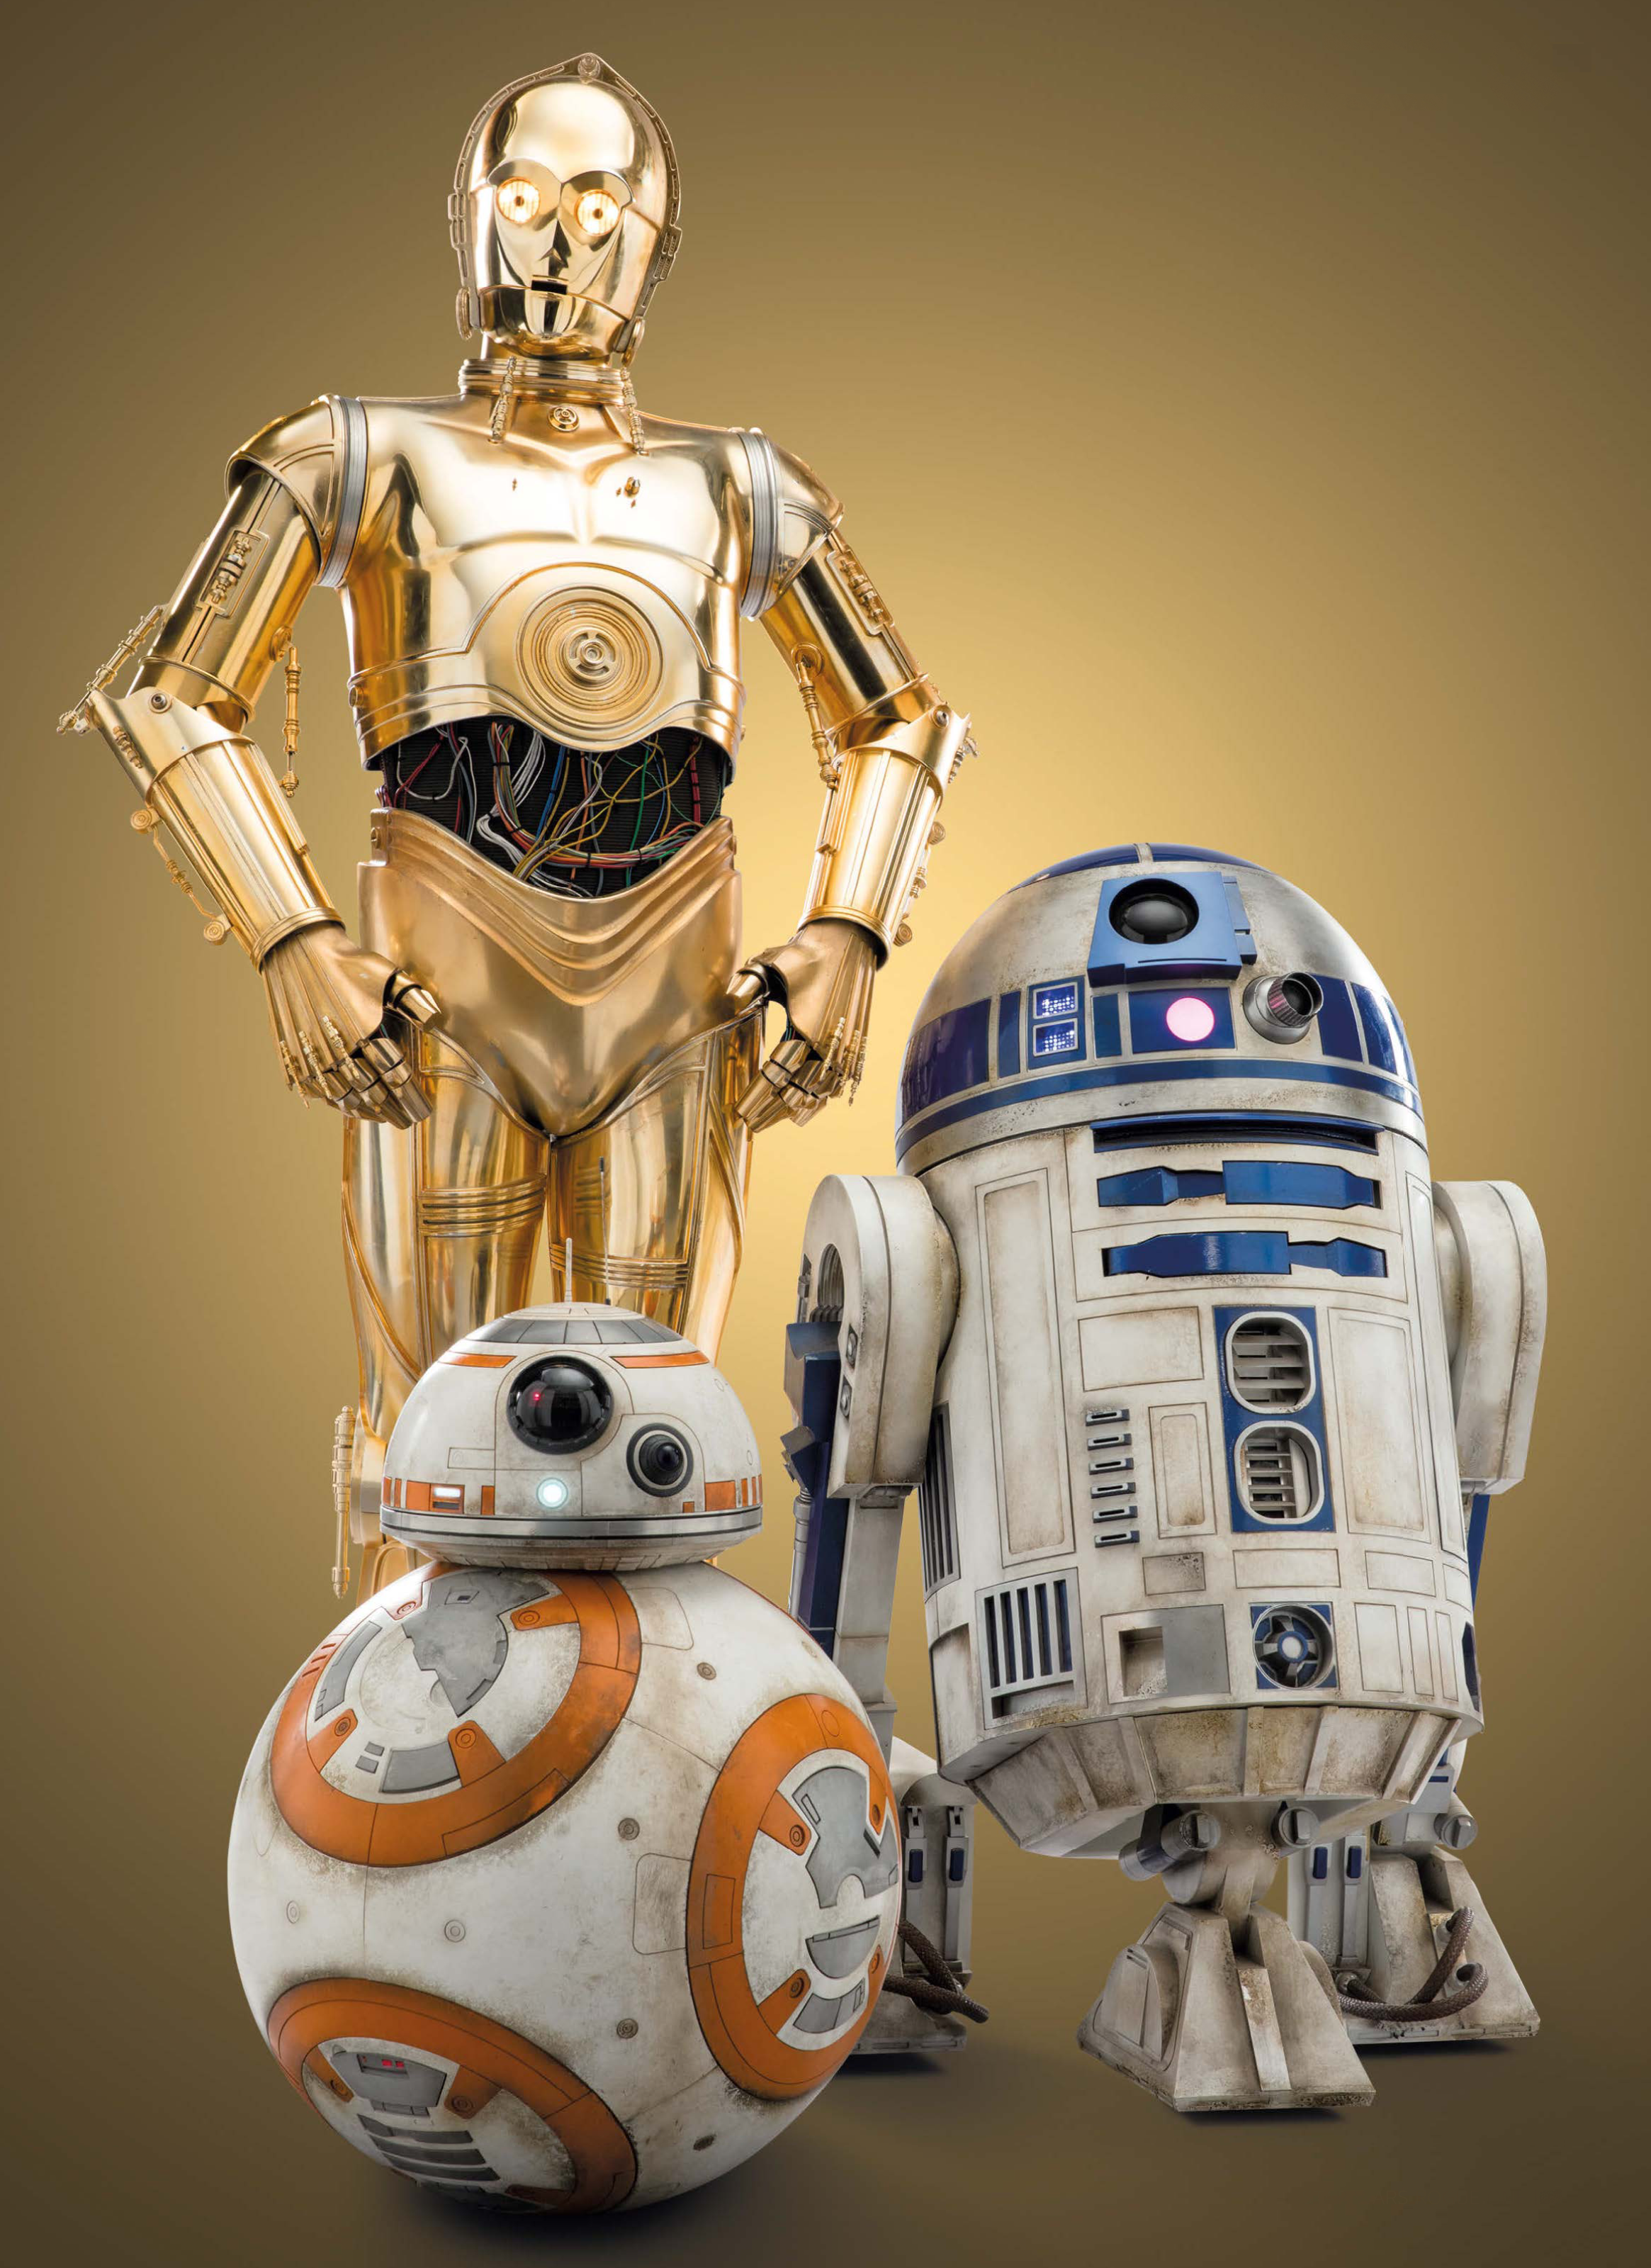 Droid wookieepedia fandom powered by wikia - Robot blanc star wars ...